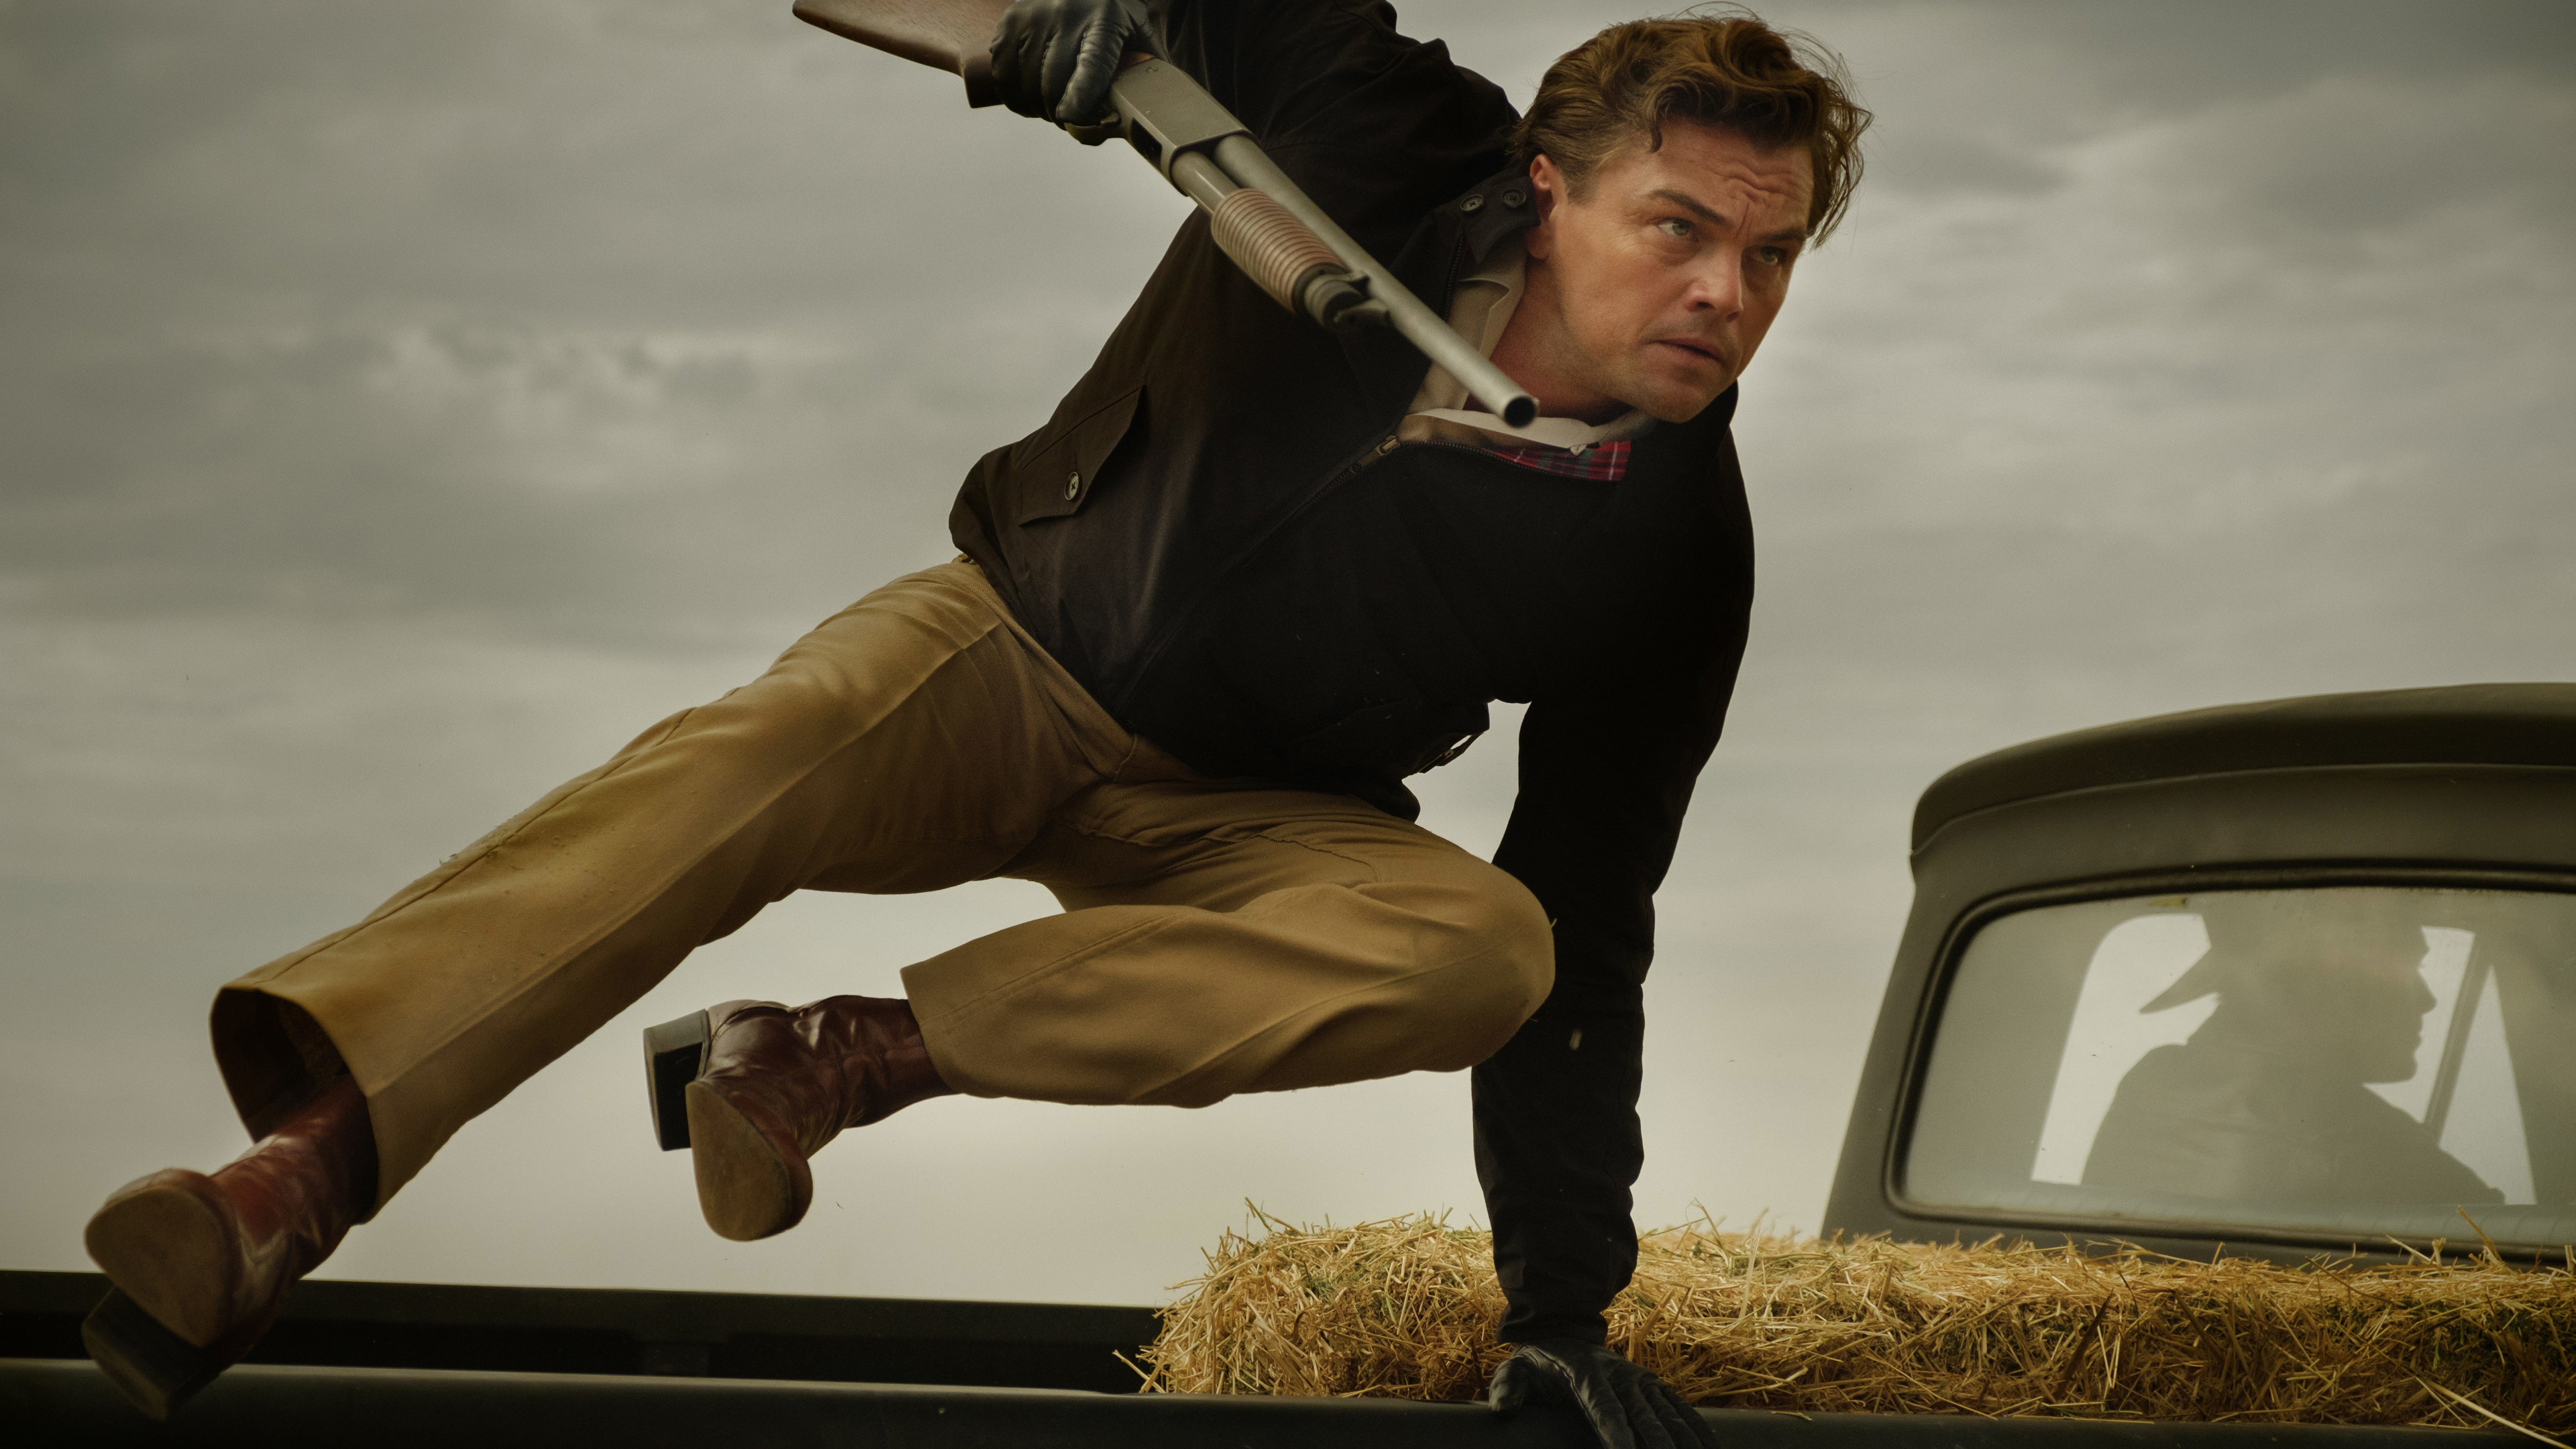 leonardo dicaprio in once upon a time in hollywood 4k 1555208579 - Leonardo DiCaprio In Once Upon A Time In Hollywood 4k - once upon a time in hollywood wallpapers, movies wallpapers, male celebrities wallpapers, leonardo dicaprio wallpapers, hd-wallpapers, 4k-wallpapers, 2019 movies wallpapers